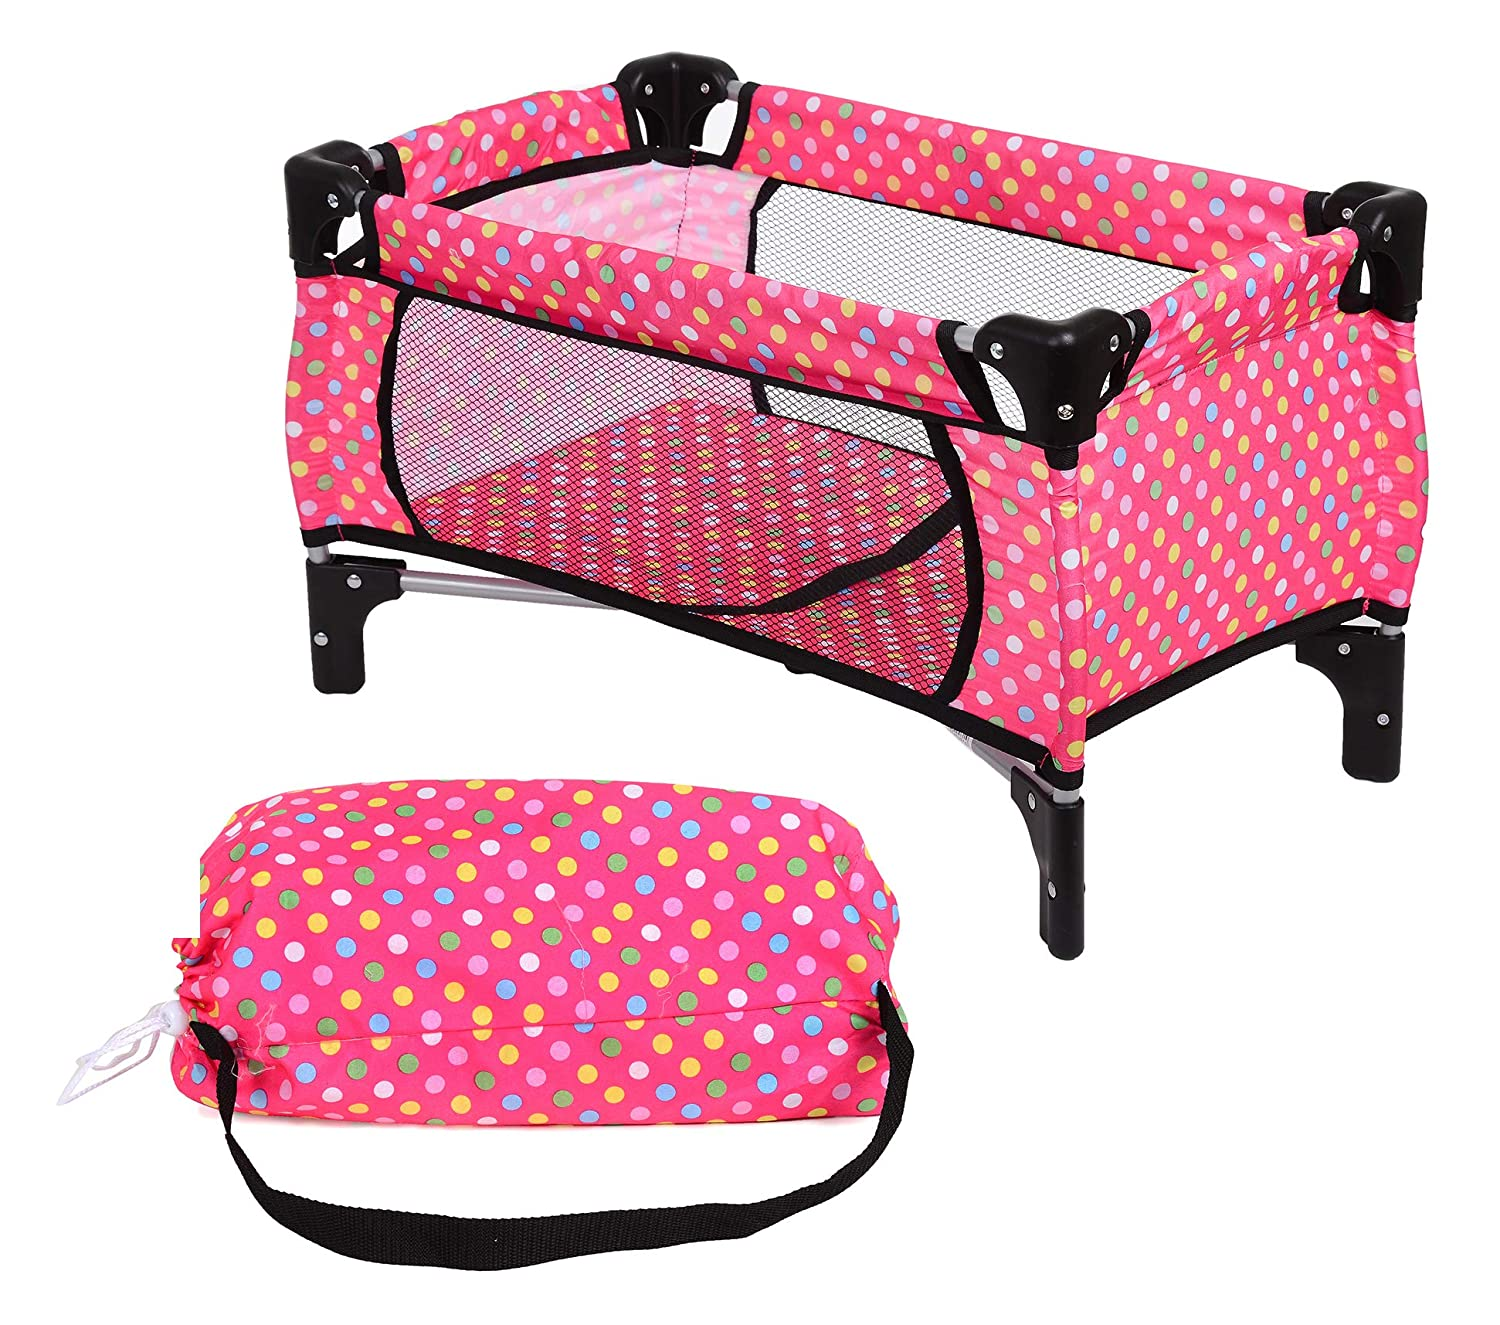 Exquisite Buggy Doll Pack N Play Crib Fits up to 18' Dolls Blanket and Carry Bag Included